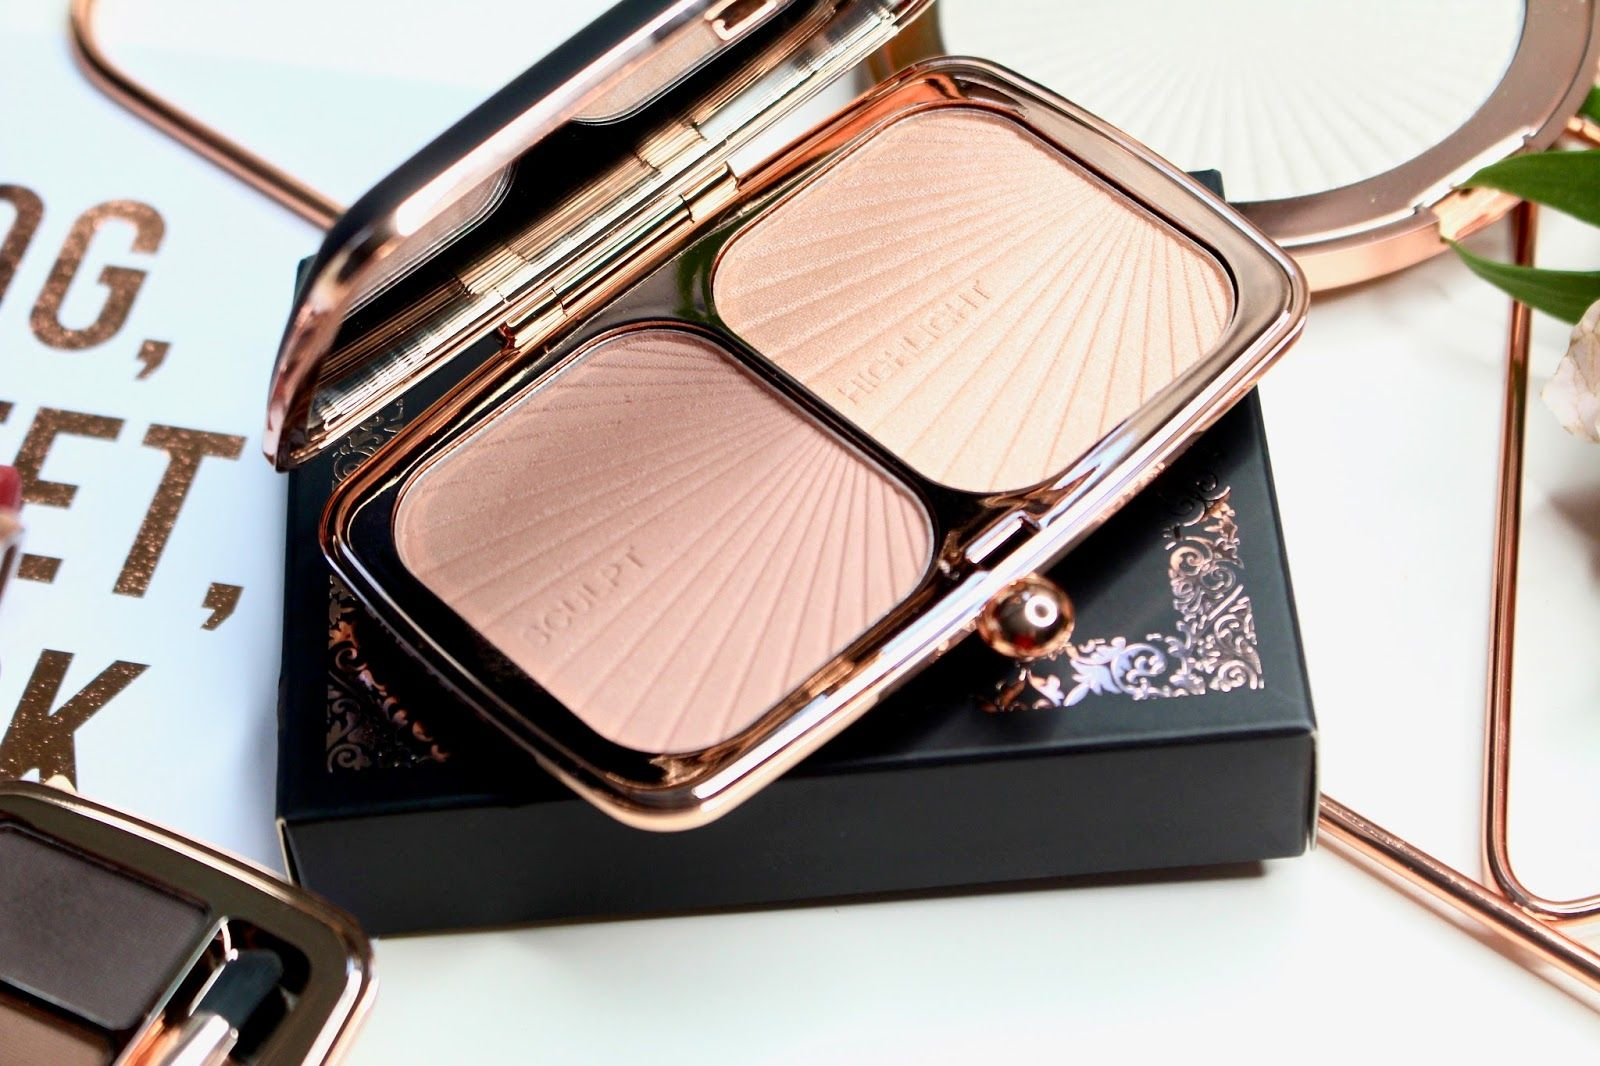 MAKEUP REVOLUTION MONDAY LUXURY AT BUDGET PRICES? NEW